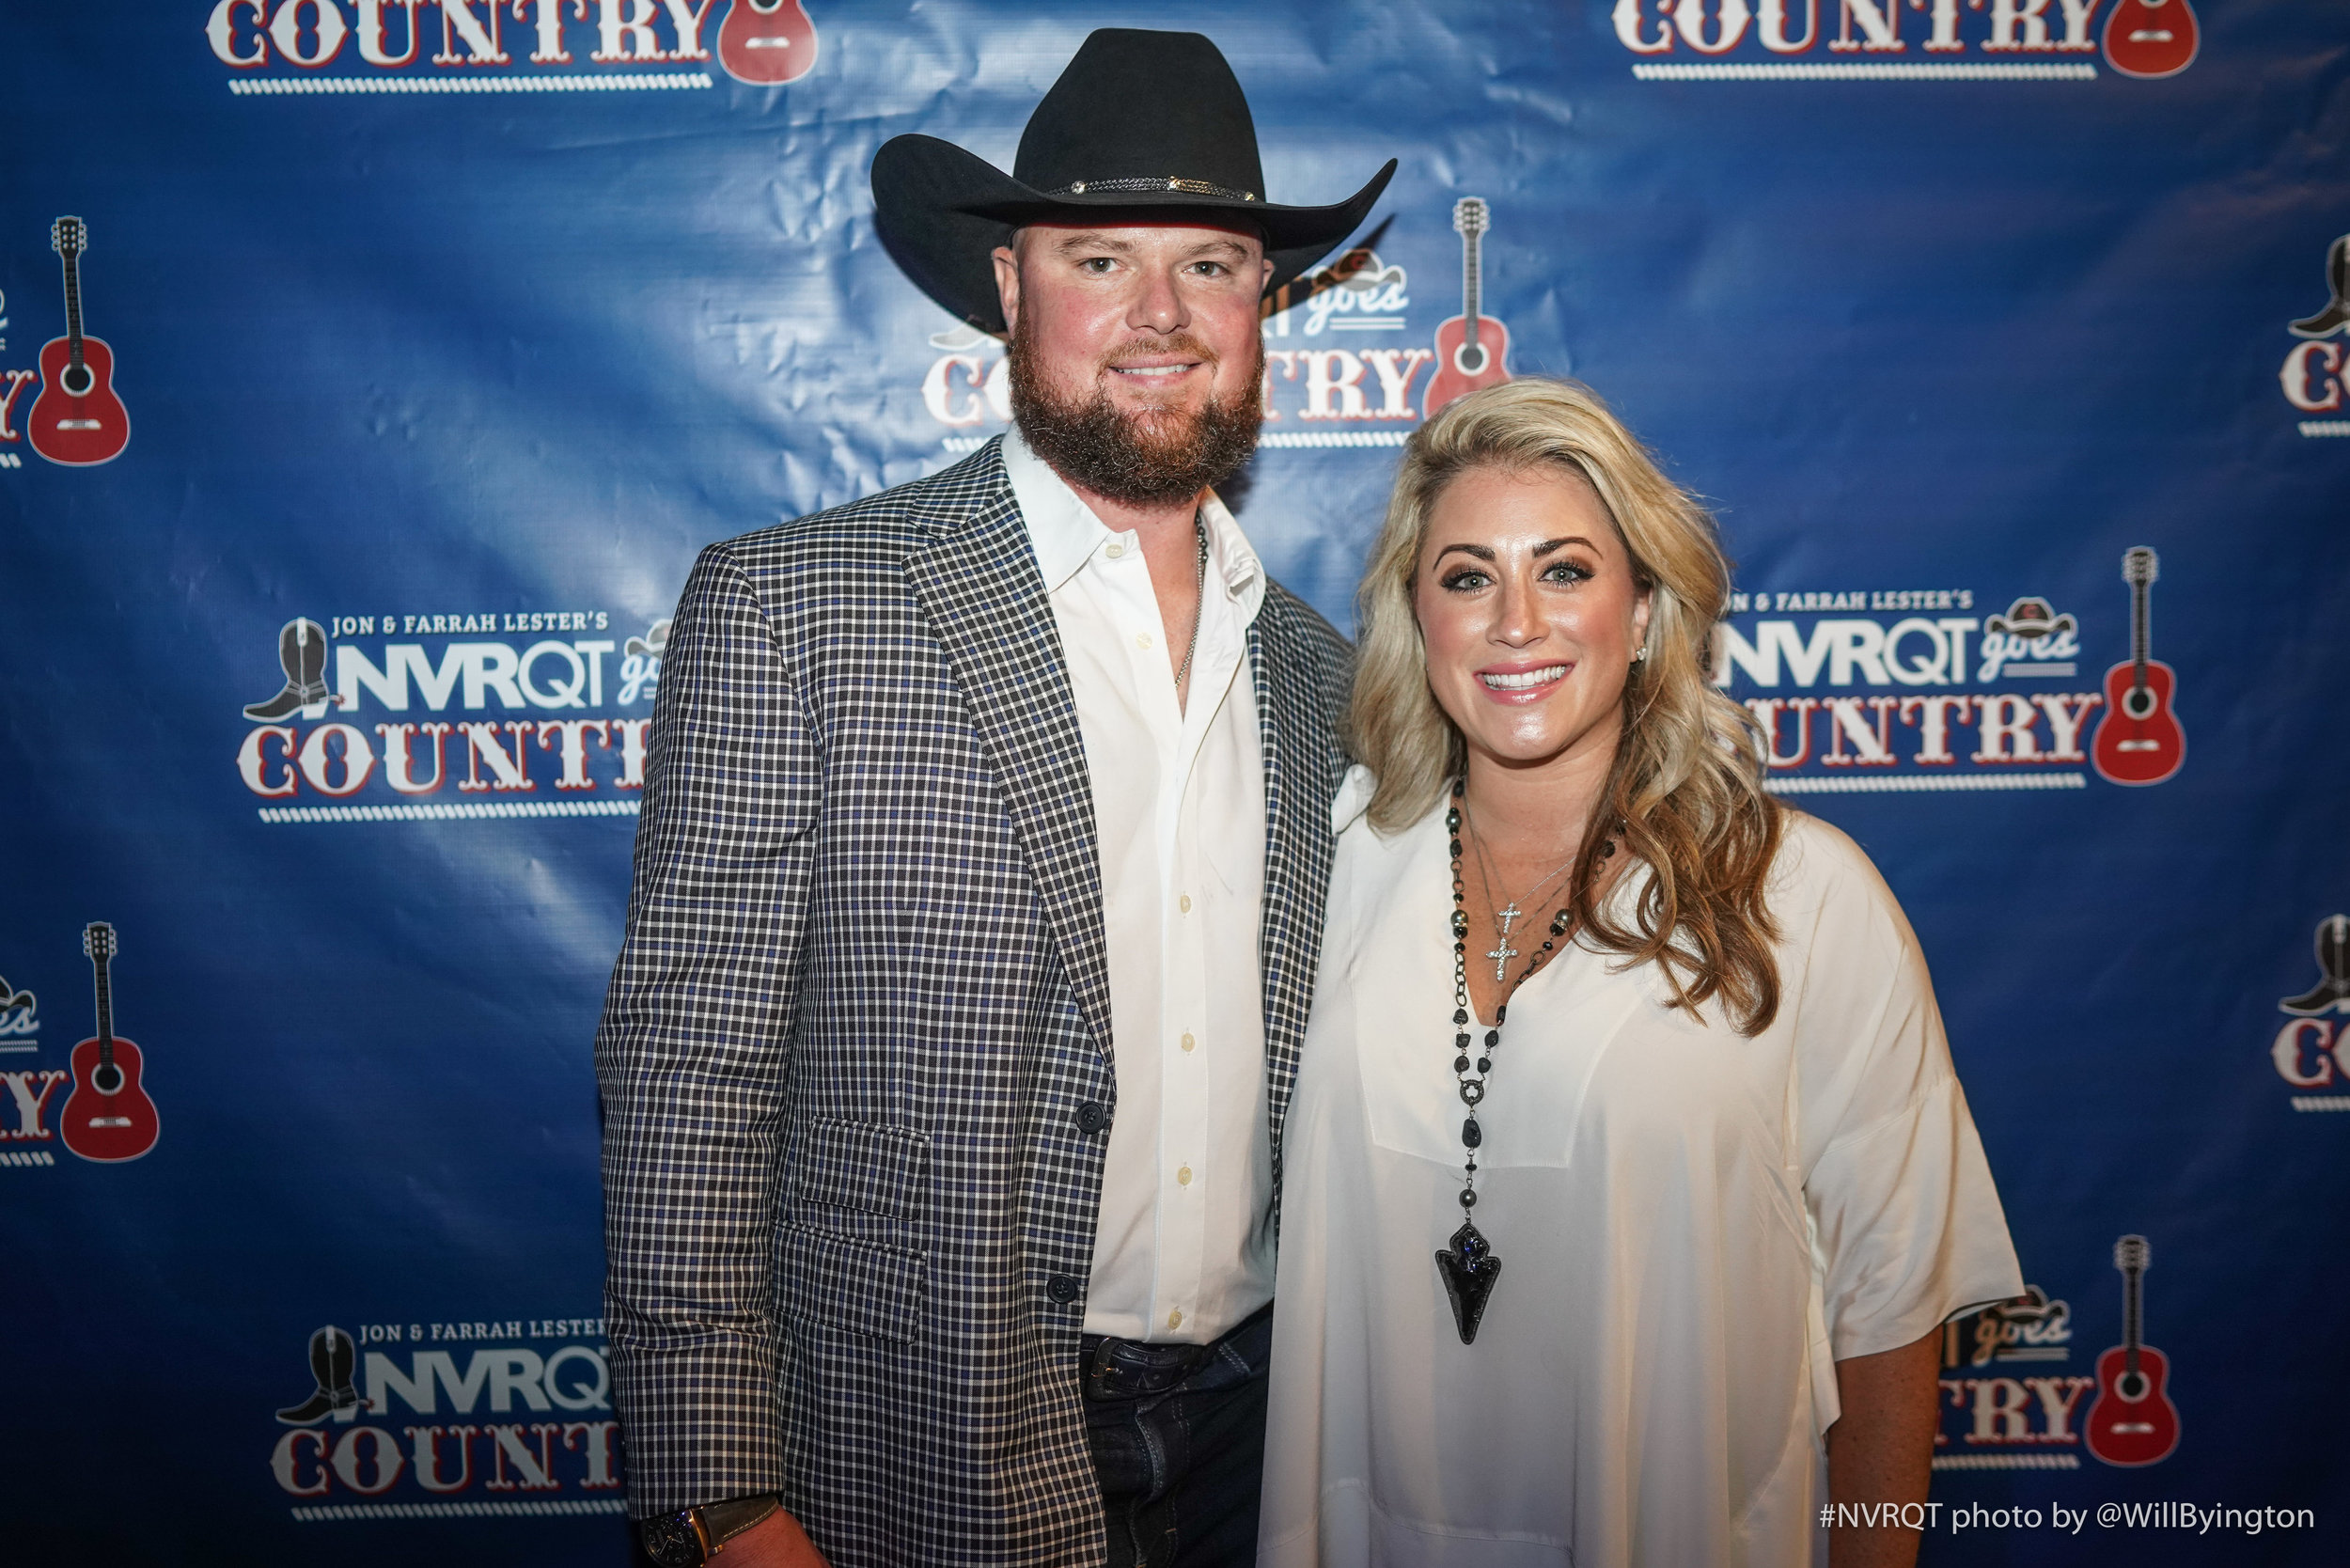 2019 NVRQT goes Country - The 2019 NVRQT goes Country Event was an energetic display of support for Jon and Farrah Lester and the Pediatric Cancer Research Foundation. Teammates and friends showed up to enjoy the party with amazing food and entertainment as well as special one of a kind auction items! Country Headliner, Dustin Lynch capped the evening off with a ton of down home music and fun.